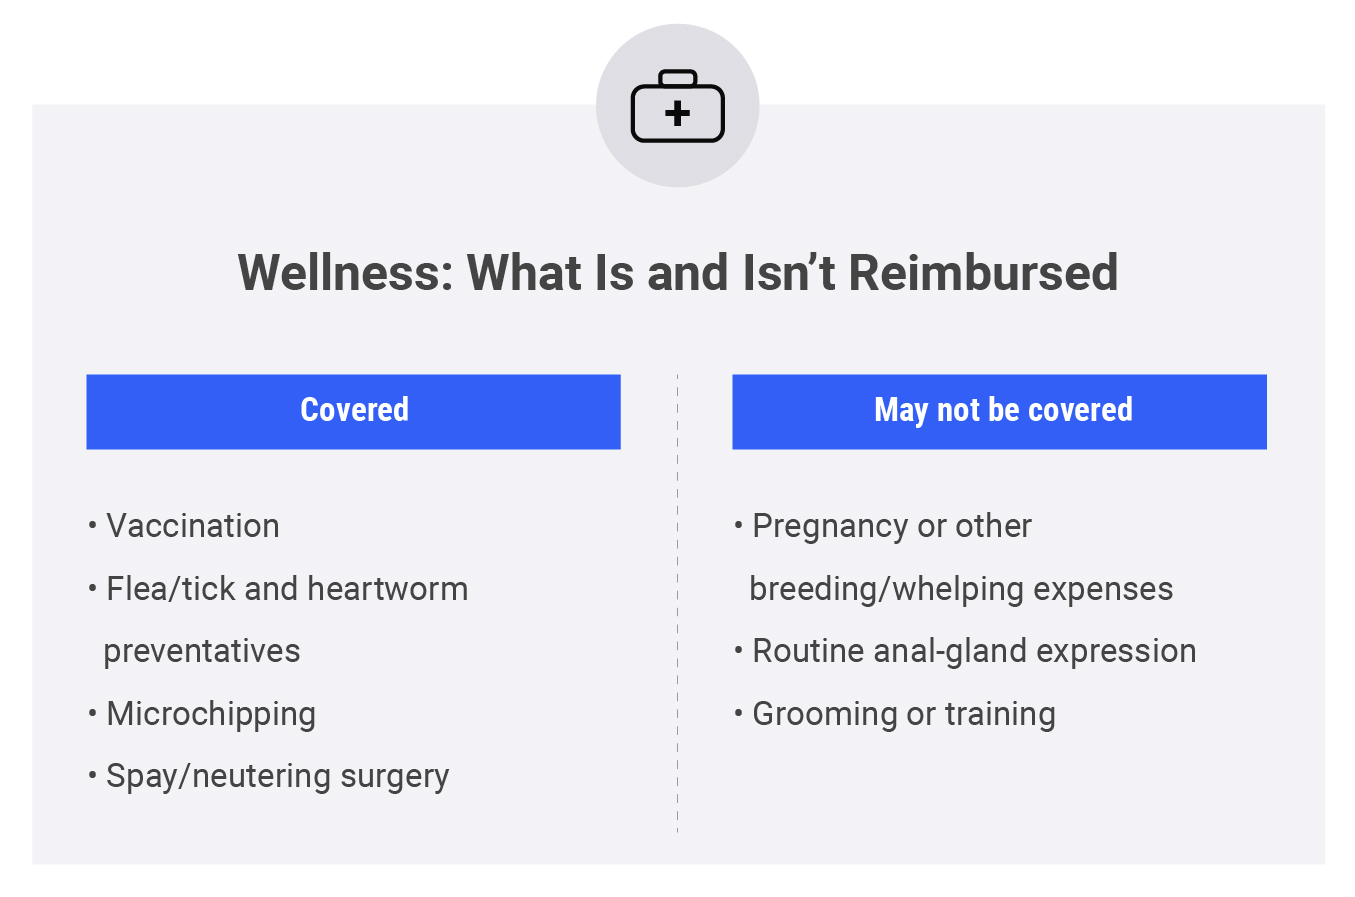 Table comparing what is and isn't covered in wellness insurance